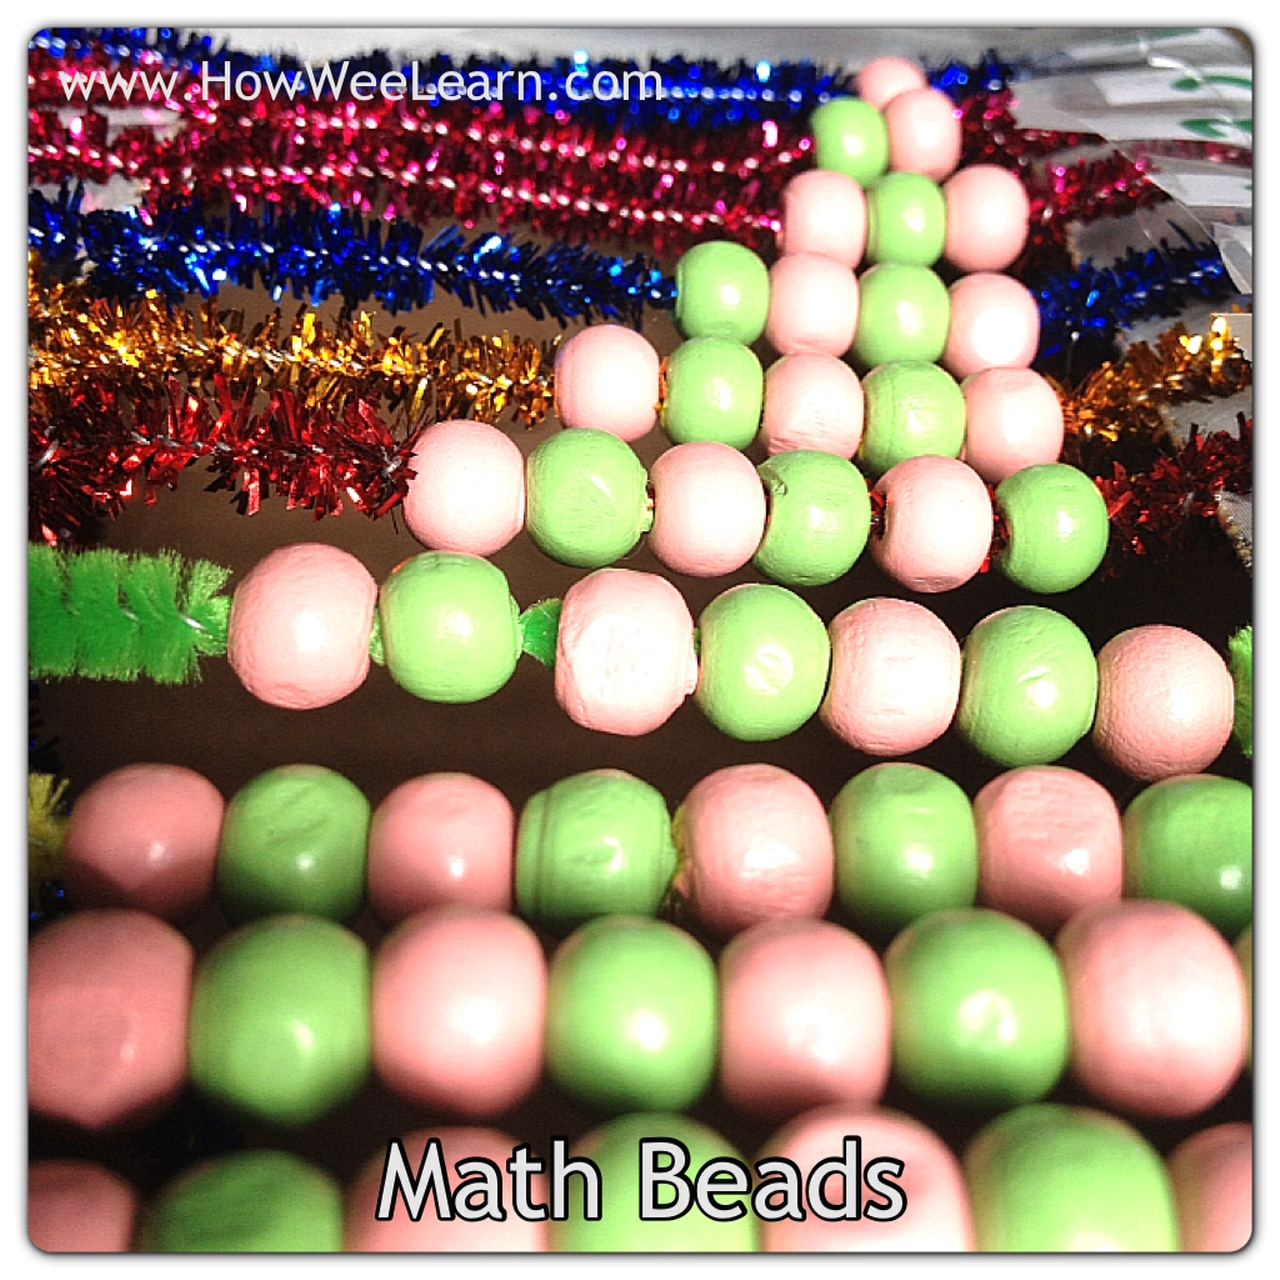 math worksheet : math beads! fun counting games with kids  how wee learn : Math Counting Games For Kindergarten